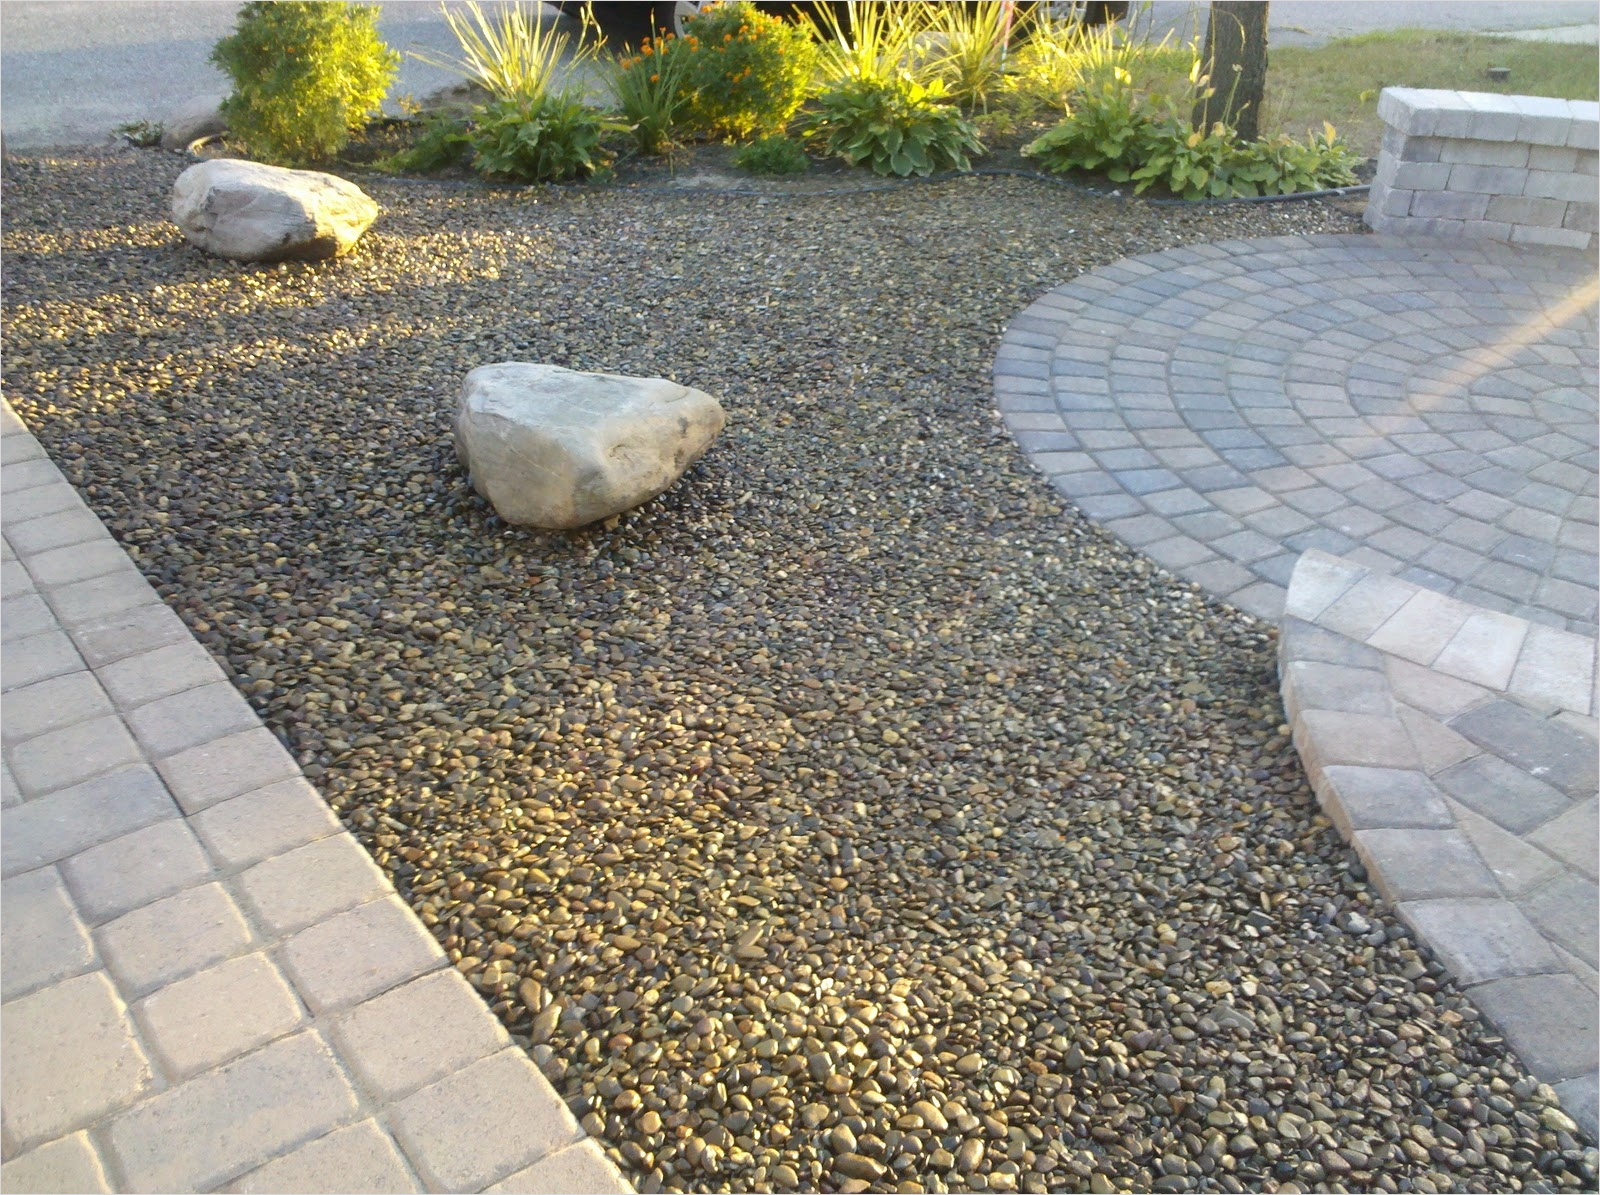 43 Perfect Gravel Landscaping Ideas 63 Gravel and Grass Landscaping Ideas 7